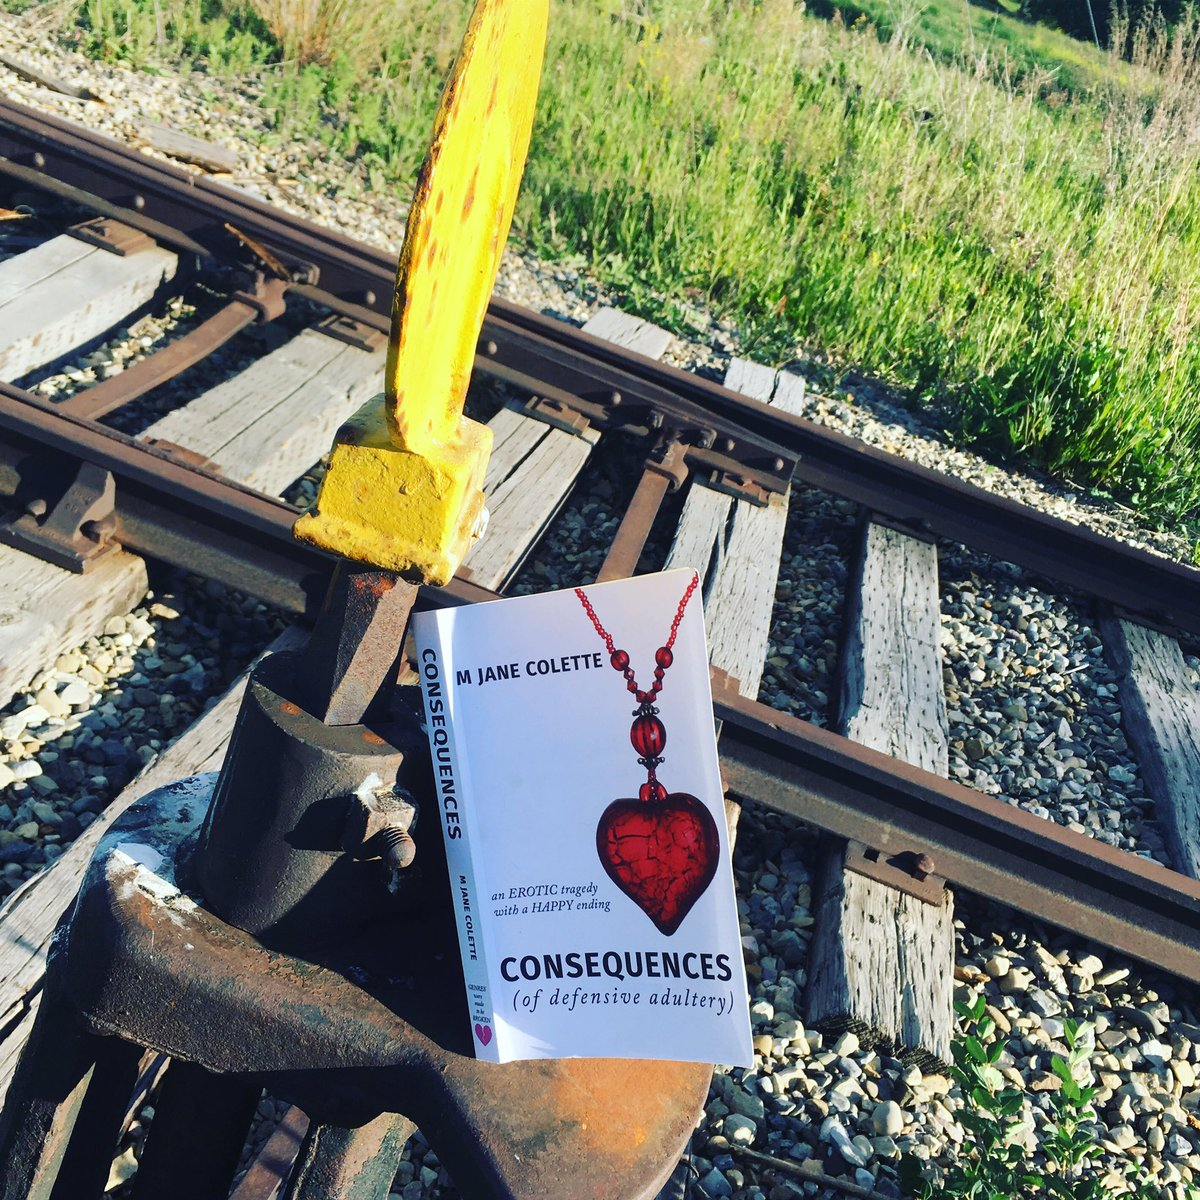 She gets around. :) #booktour #traintrack #bookcover #bookpic <br>http://pic.twitter.com/GuVk8L8KIk